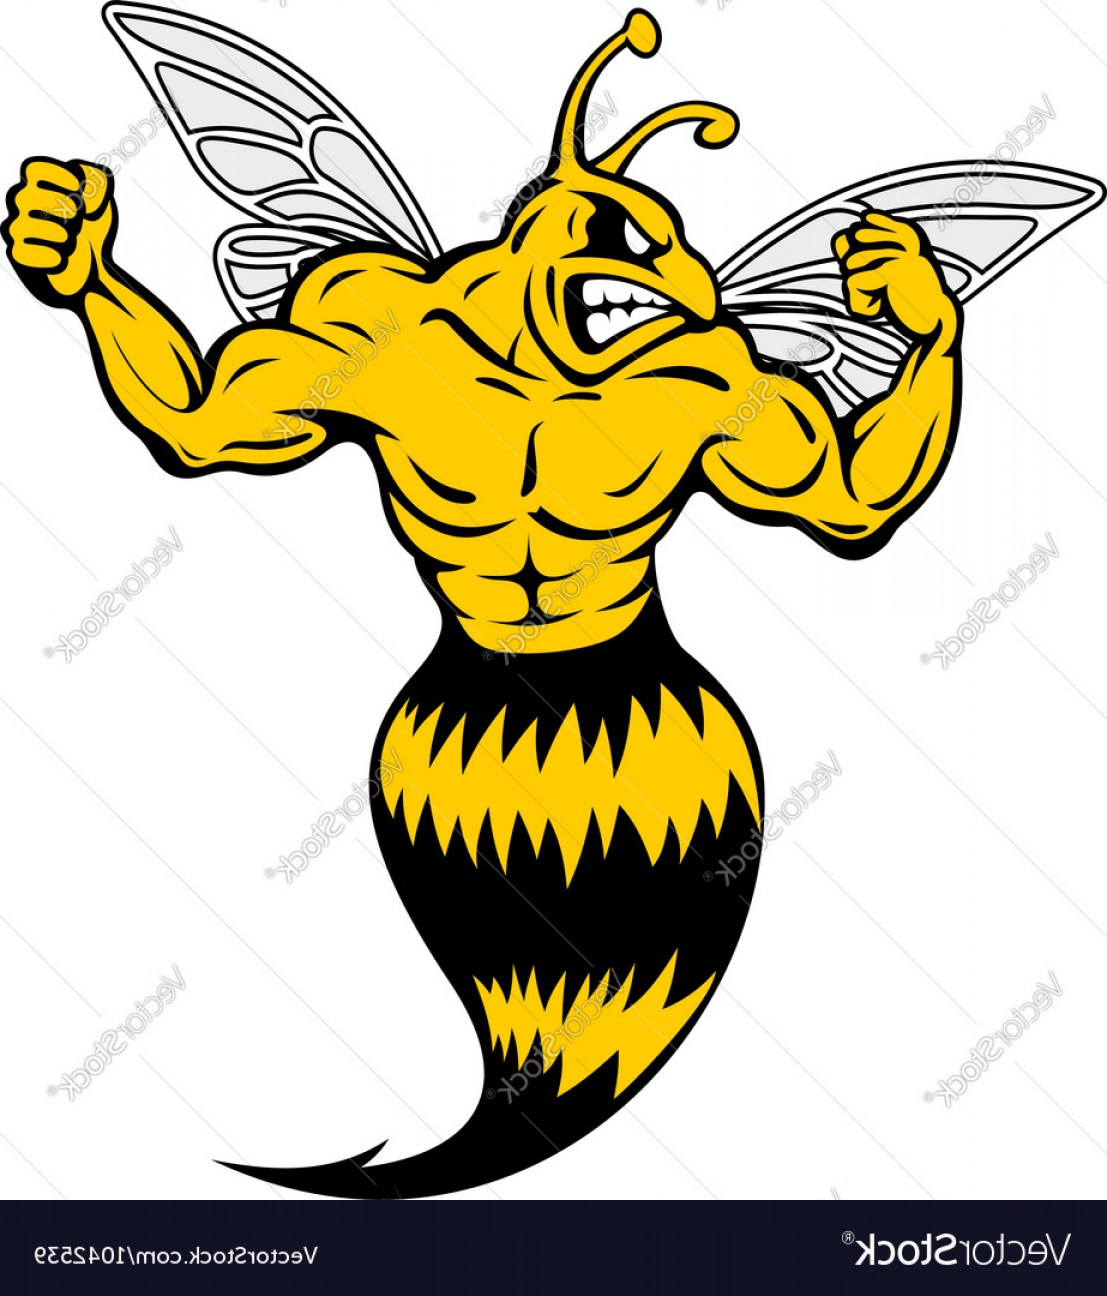 Yellow Jacket Vector Art: Powerful And Danger Yellow Jacket Vector